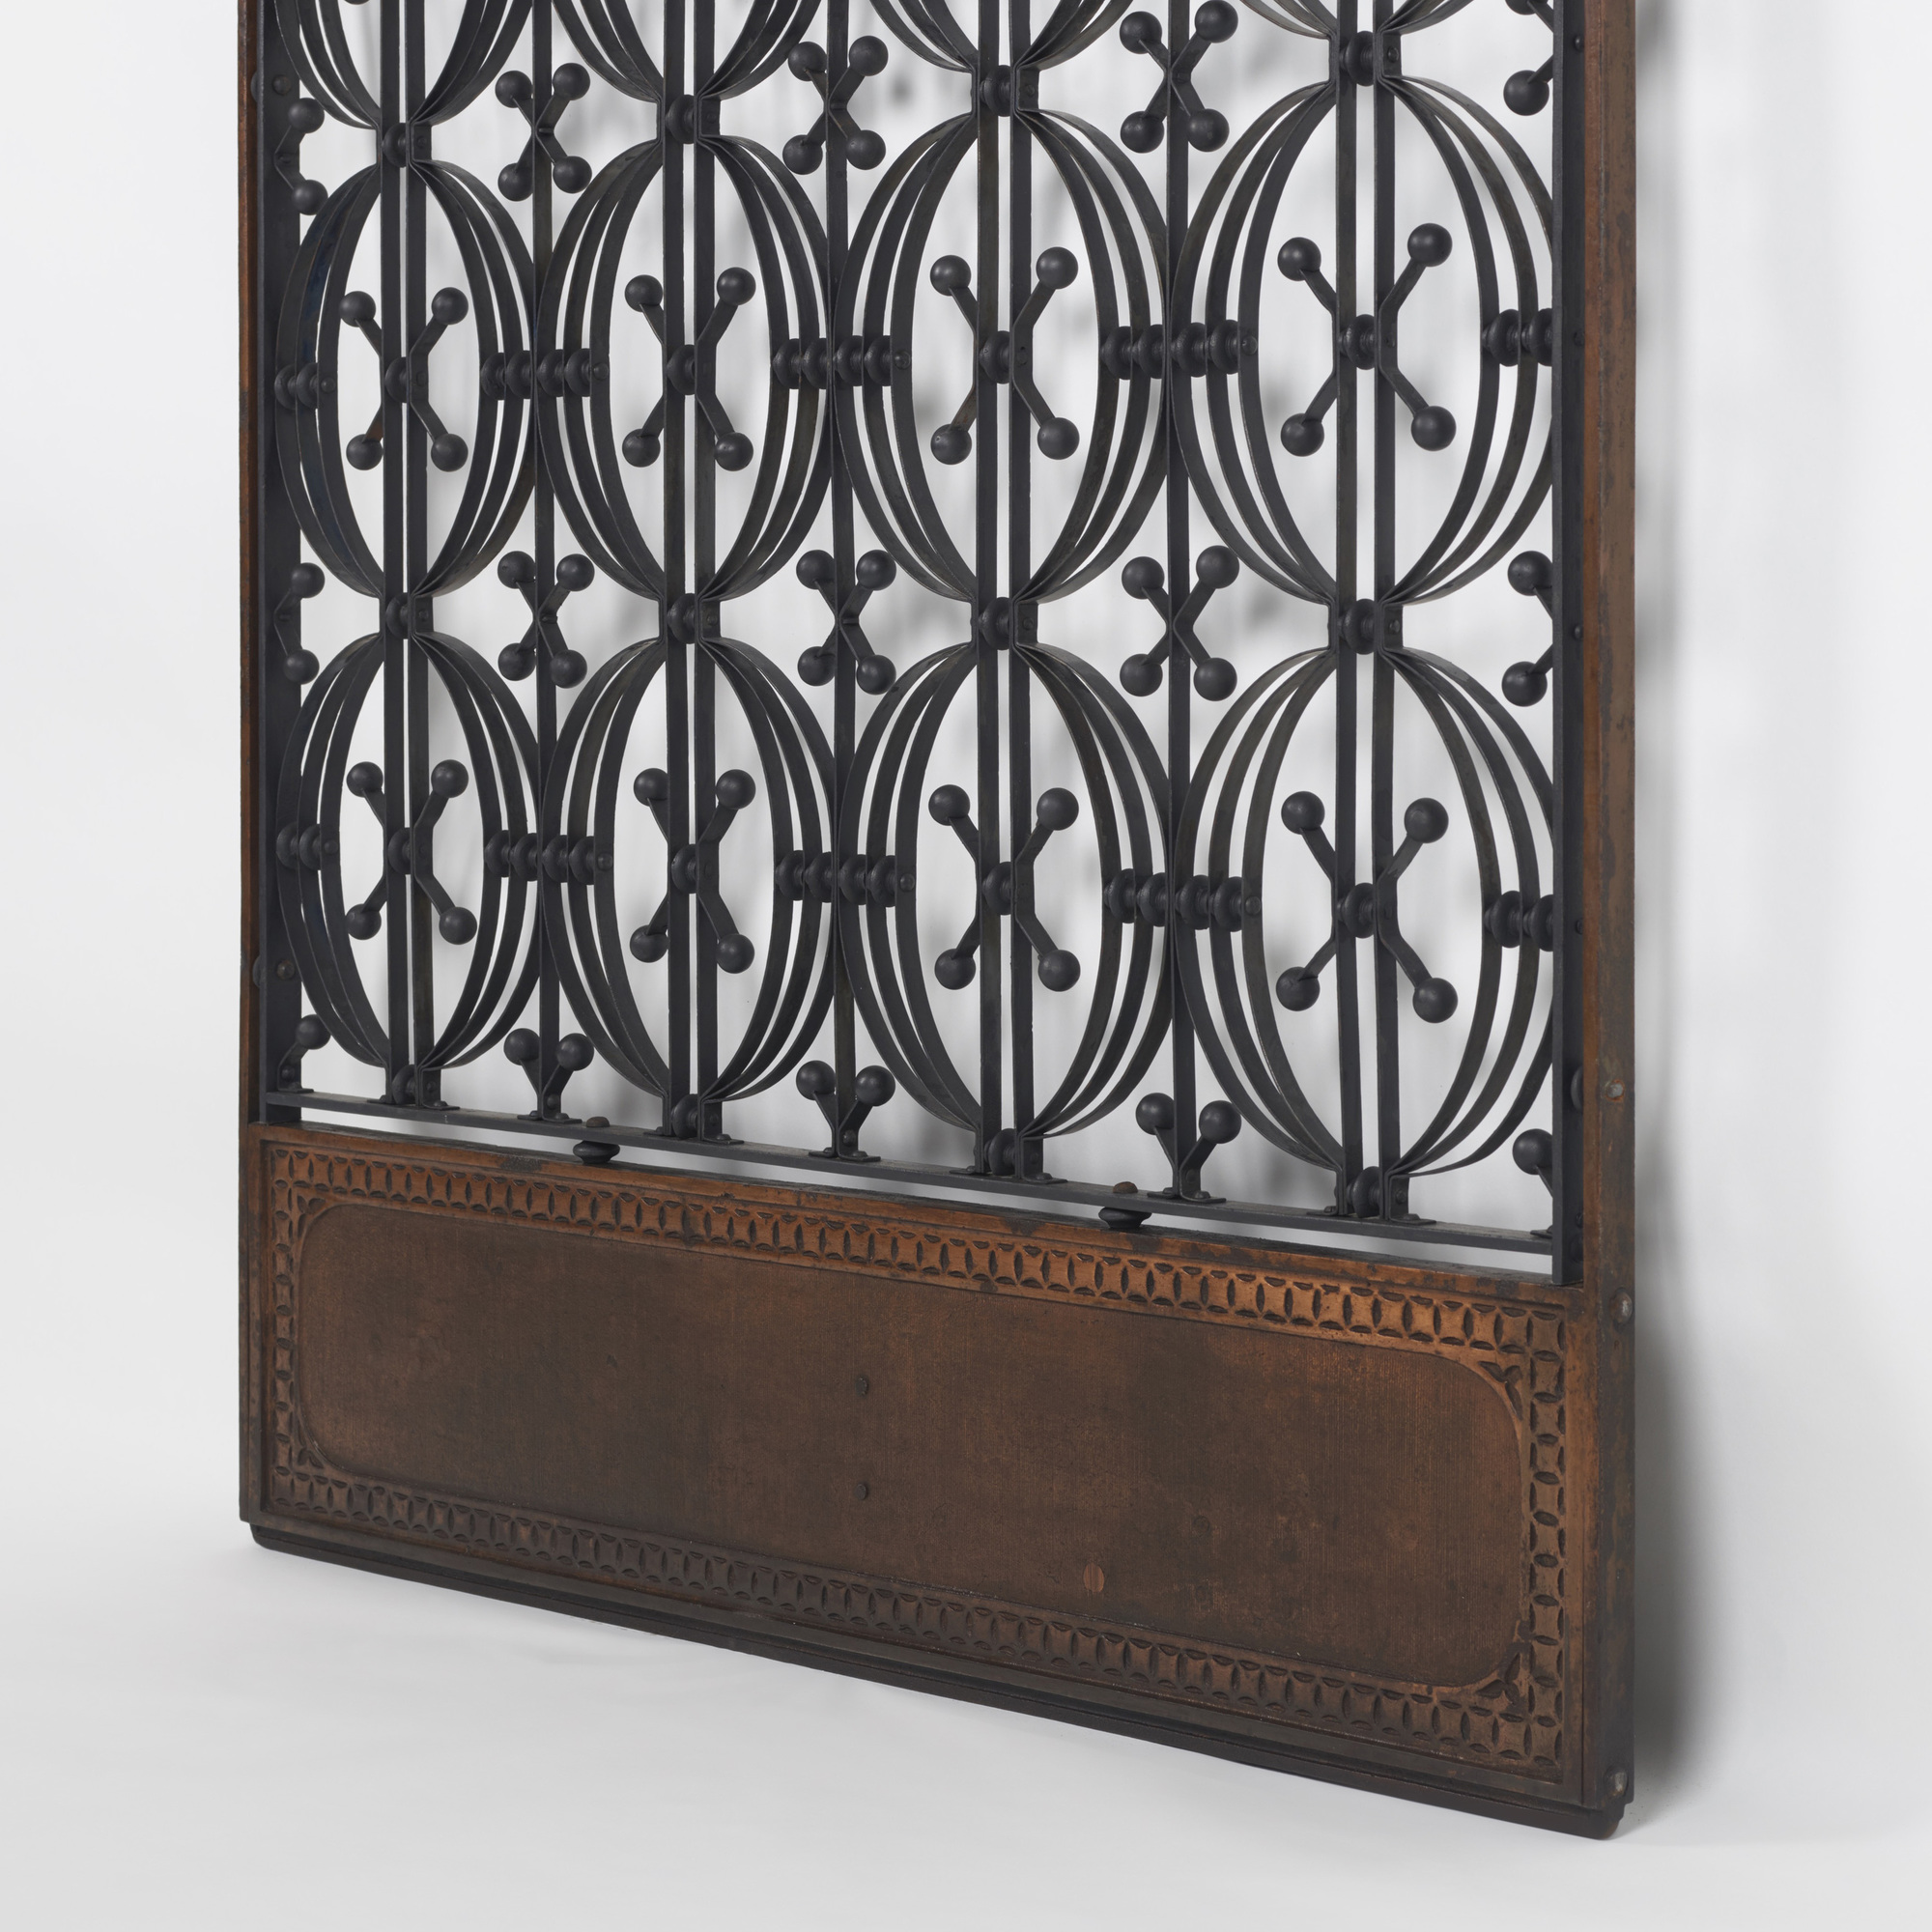 2: Dankmar Adler and Louis Sullivan / Elevator door from the Chicago Stock Exchange (2 of 3)